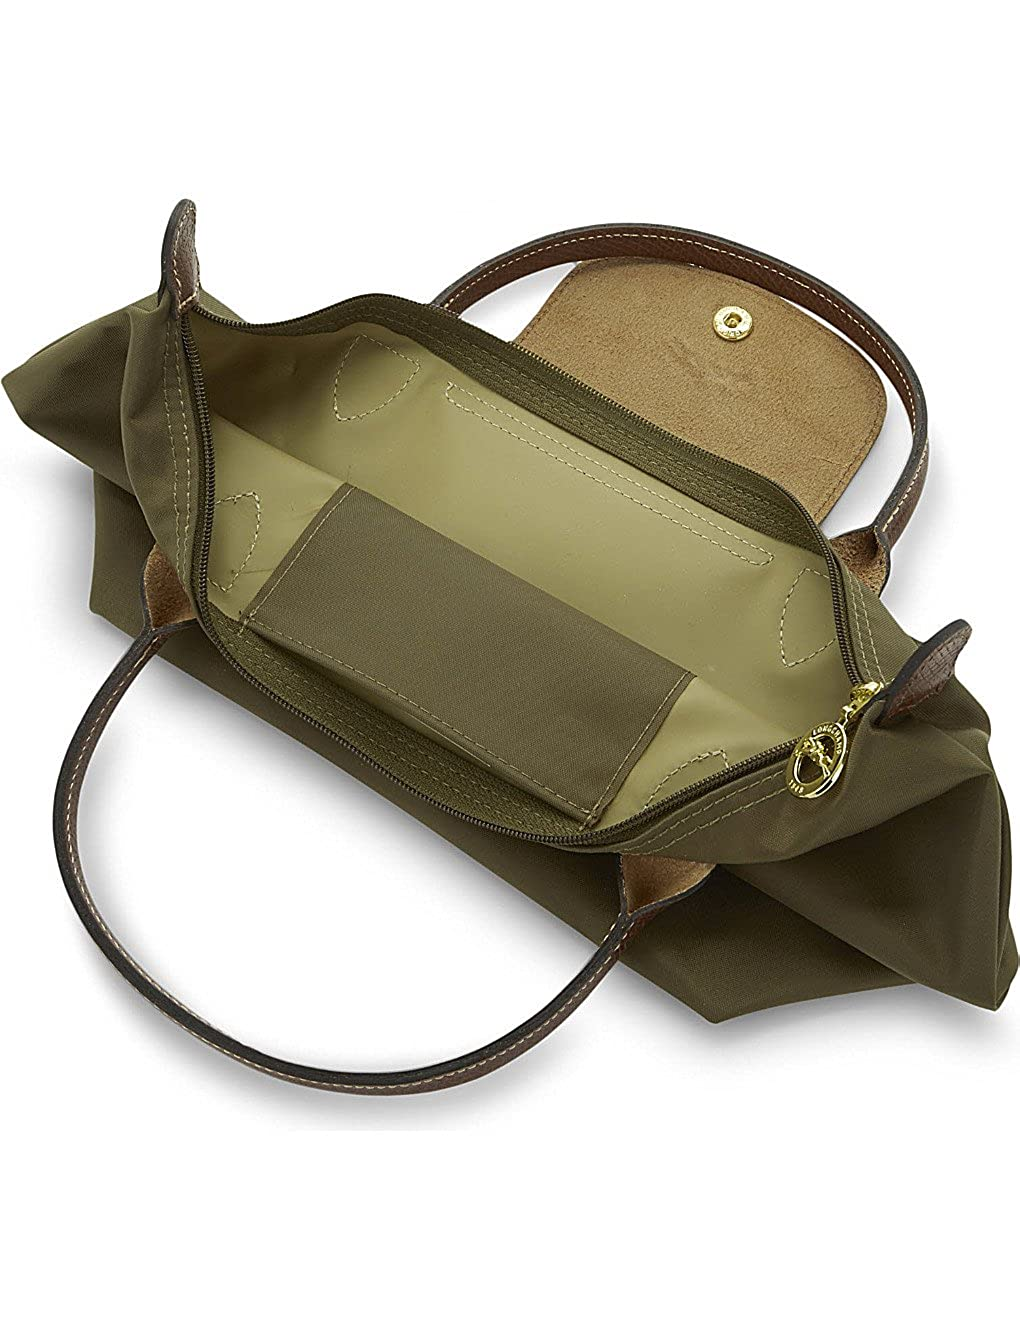 Longchamp Le Pliage Small Handbag Shopper Khaki Lc030 Longchample Medium The City Shoes Bags